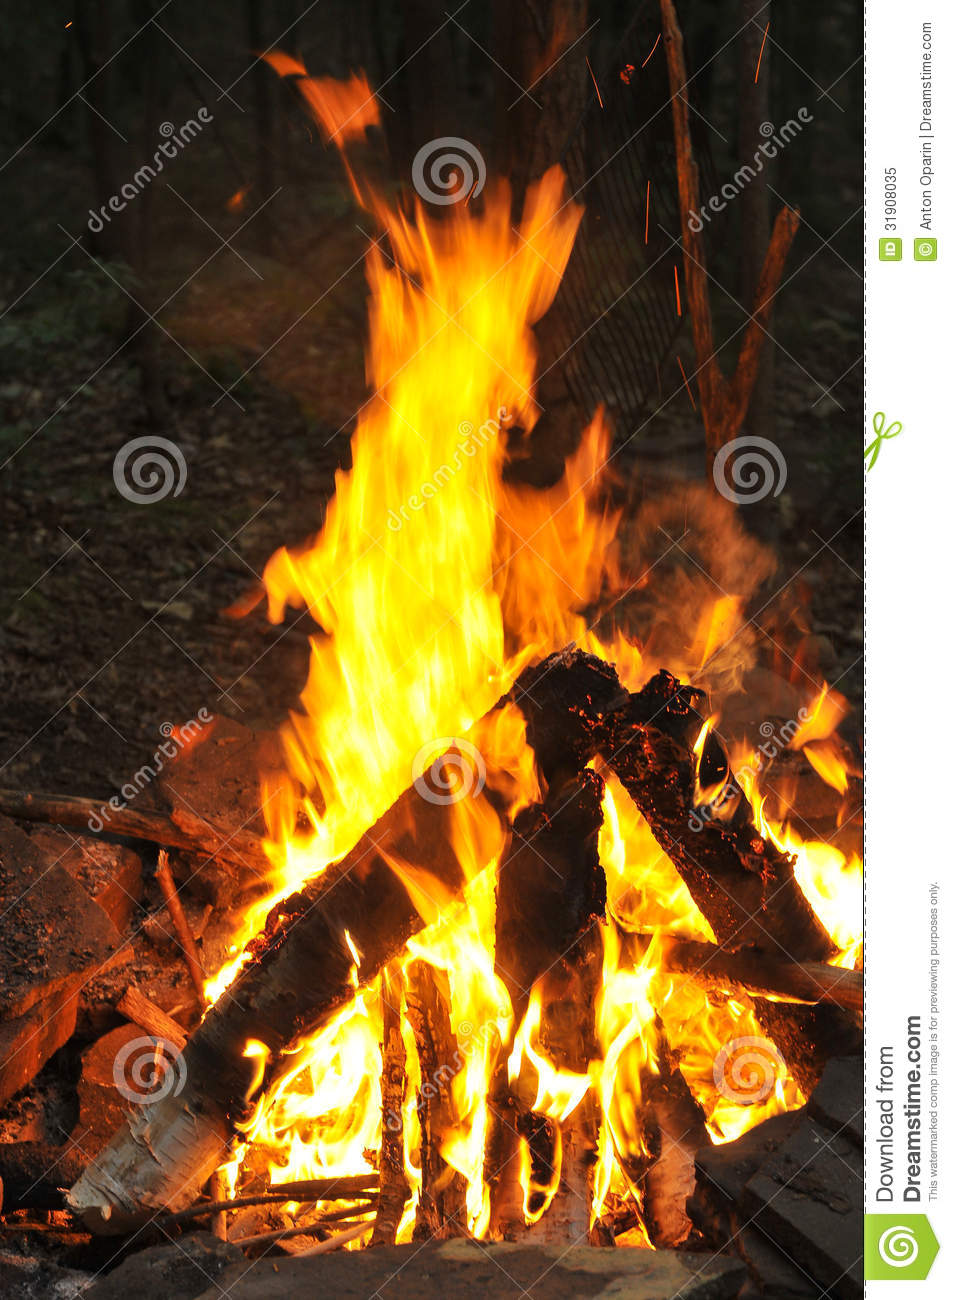 Camp Fire Burning Royalty Free Stock Photo  Image 31908035